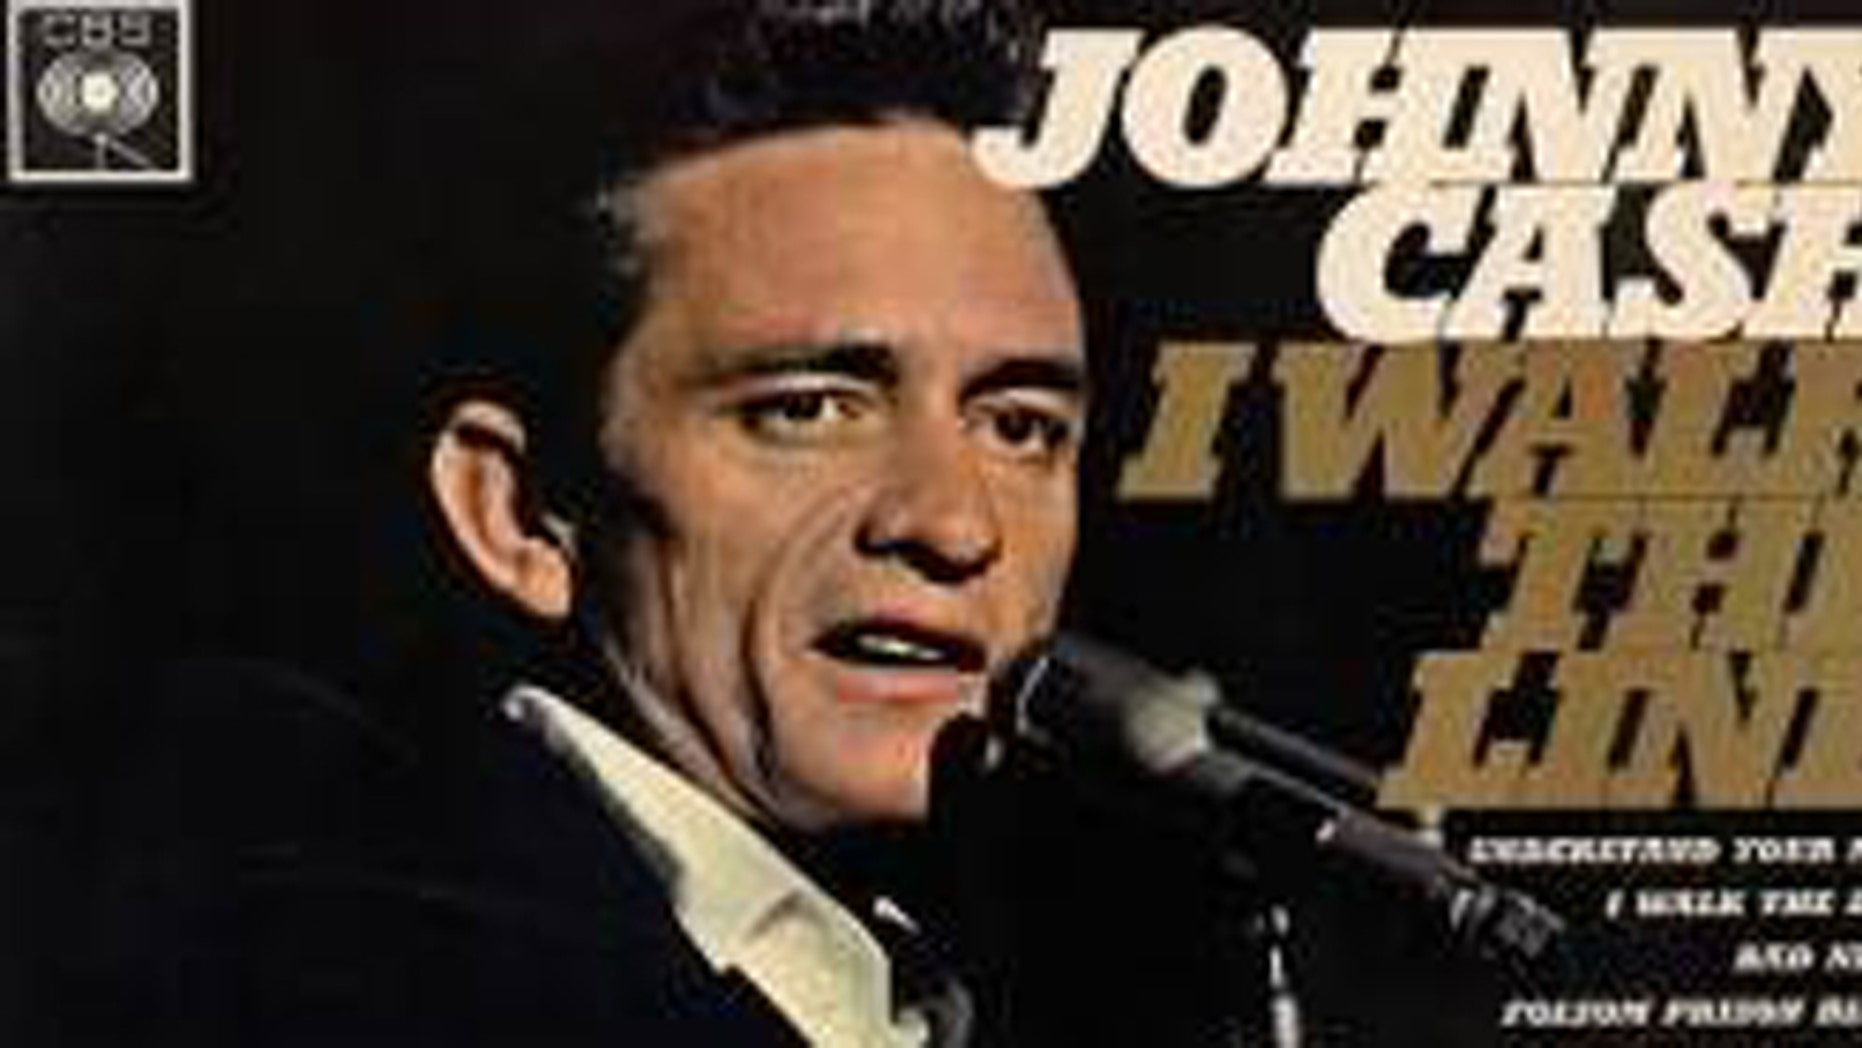 Johnny Cash's ninetheeth album: I Walk the Line